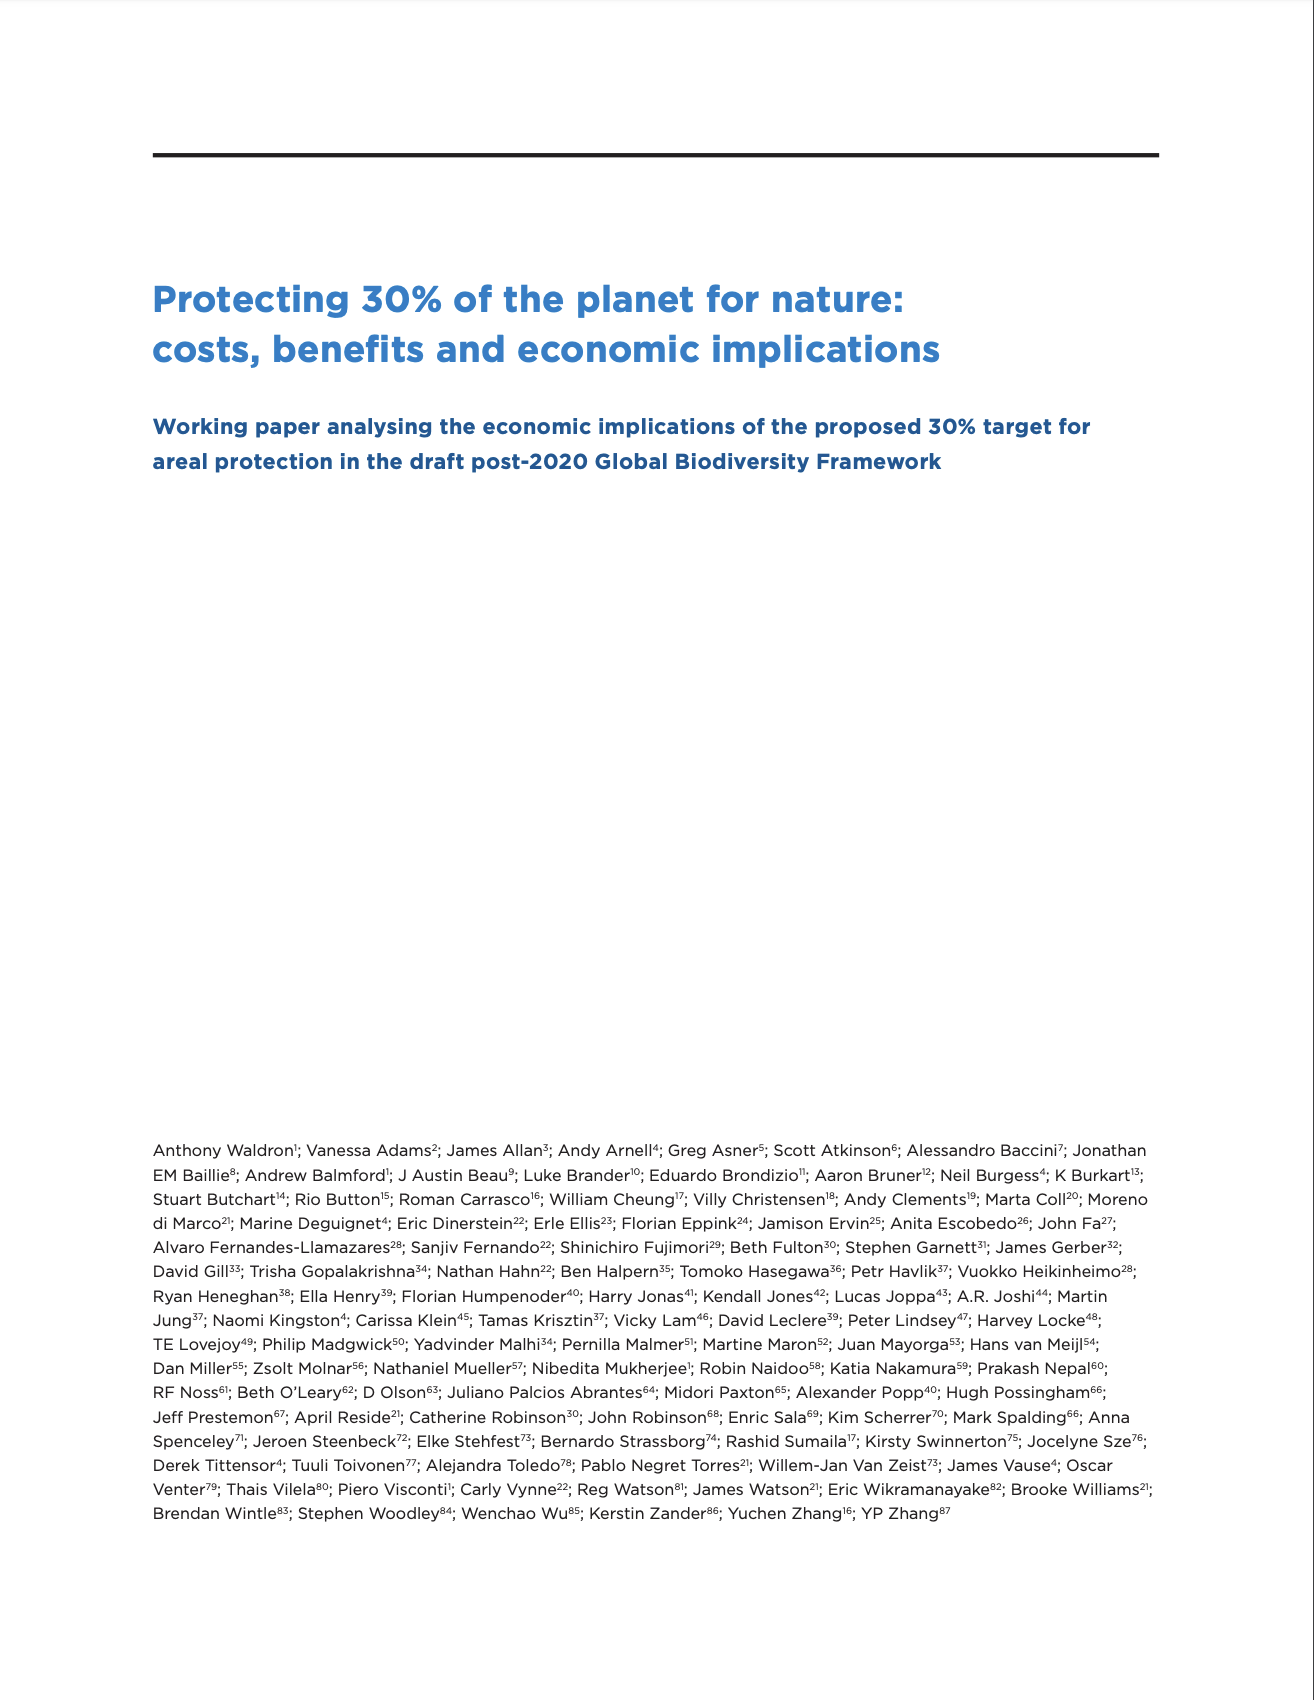 Protecting 30% of the planet for nature: costs, benefits and economic implications